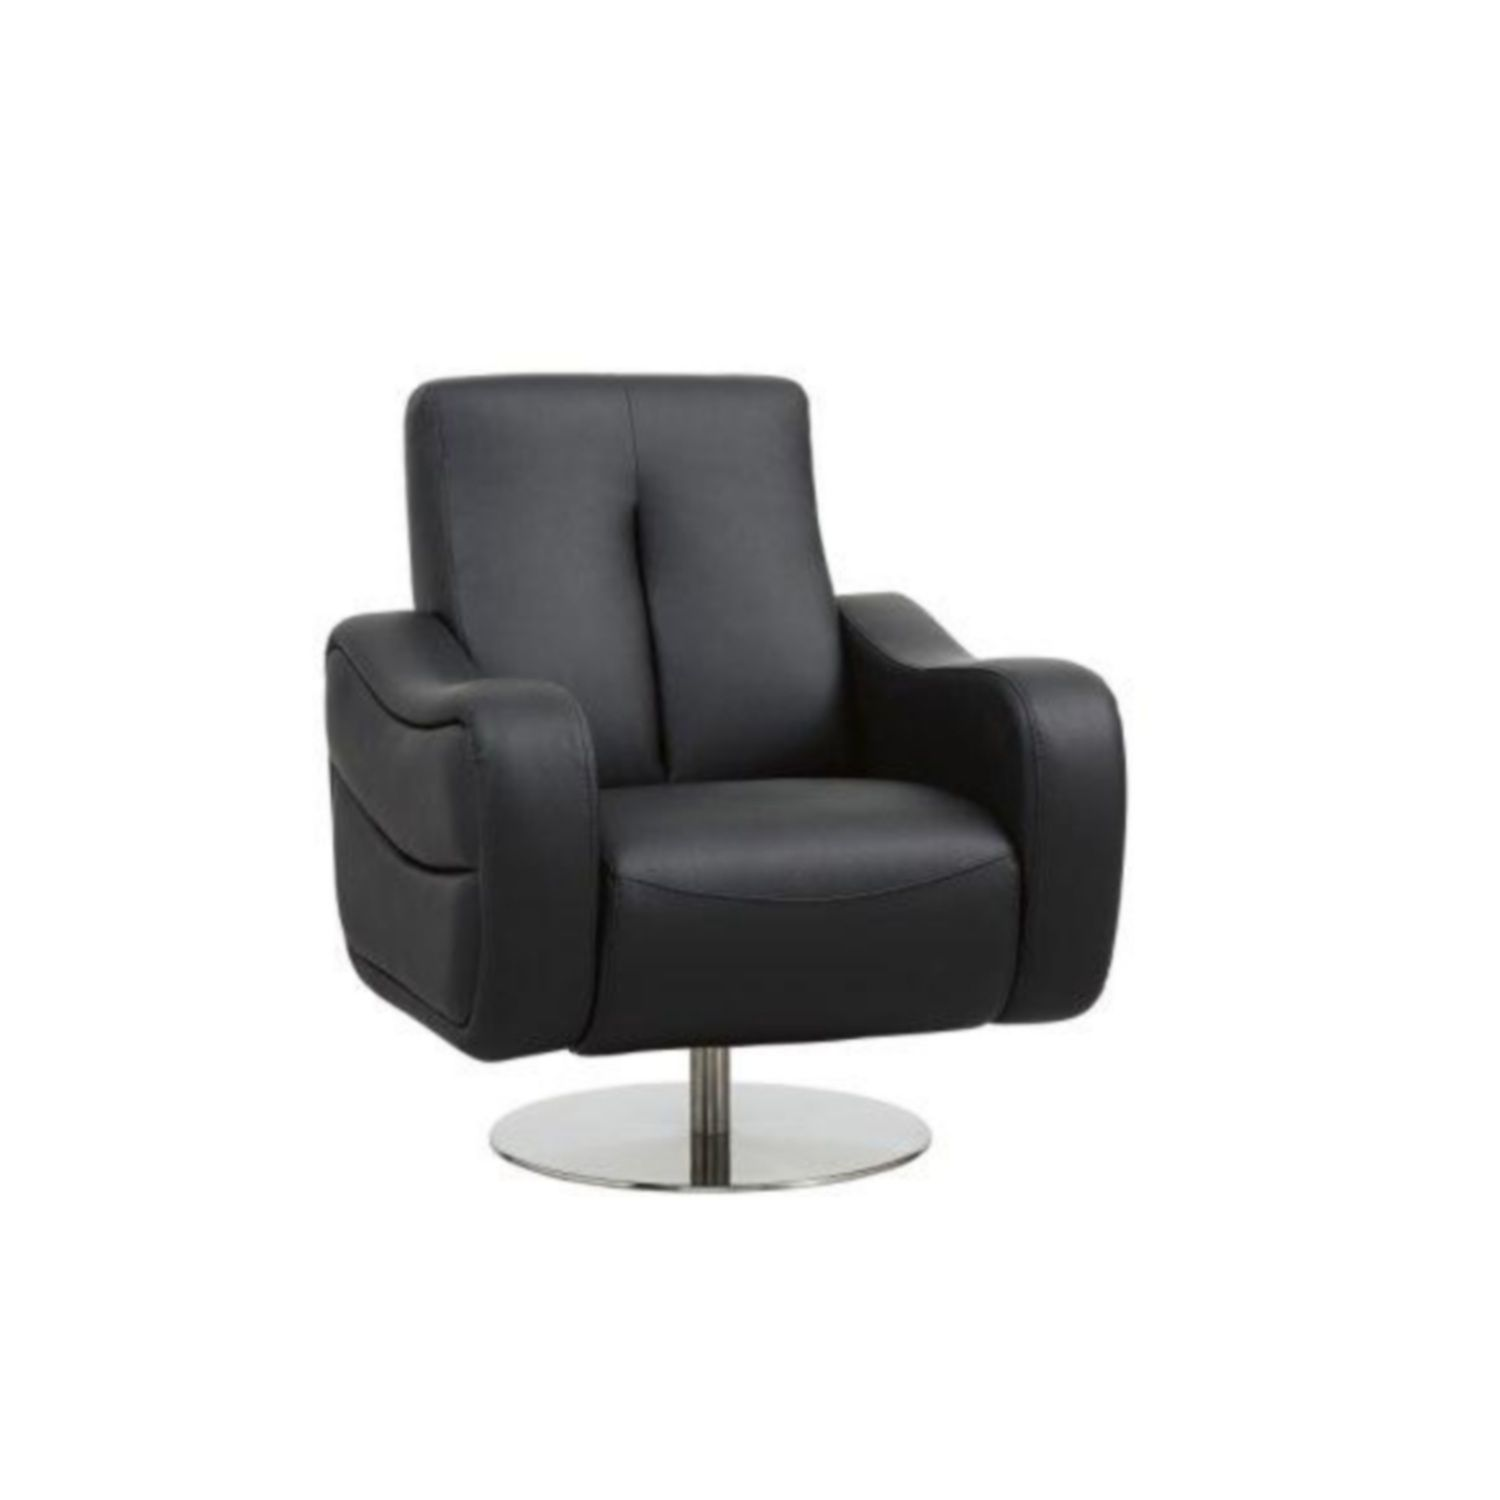 Buy Caprice 1 25 Seater Electric Recliner Domayne Au